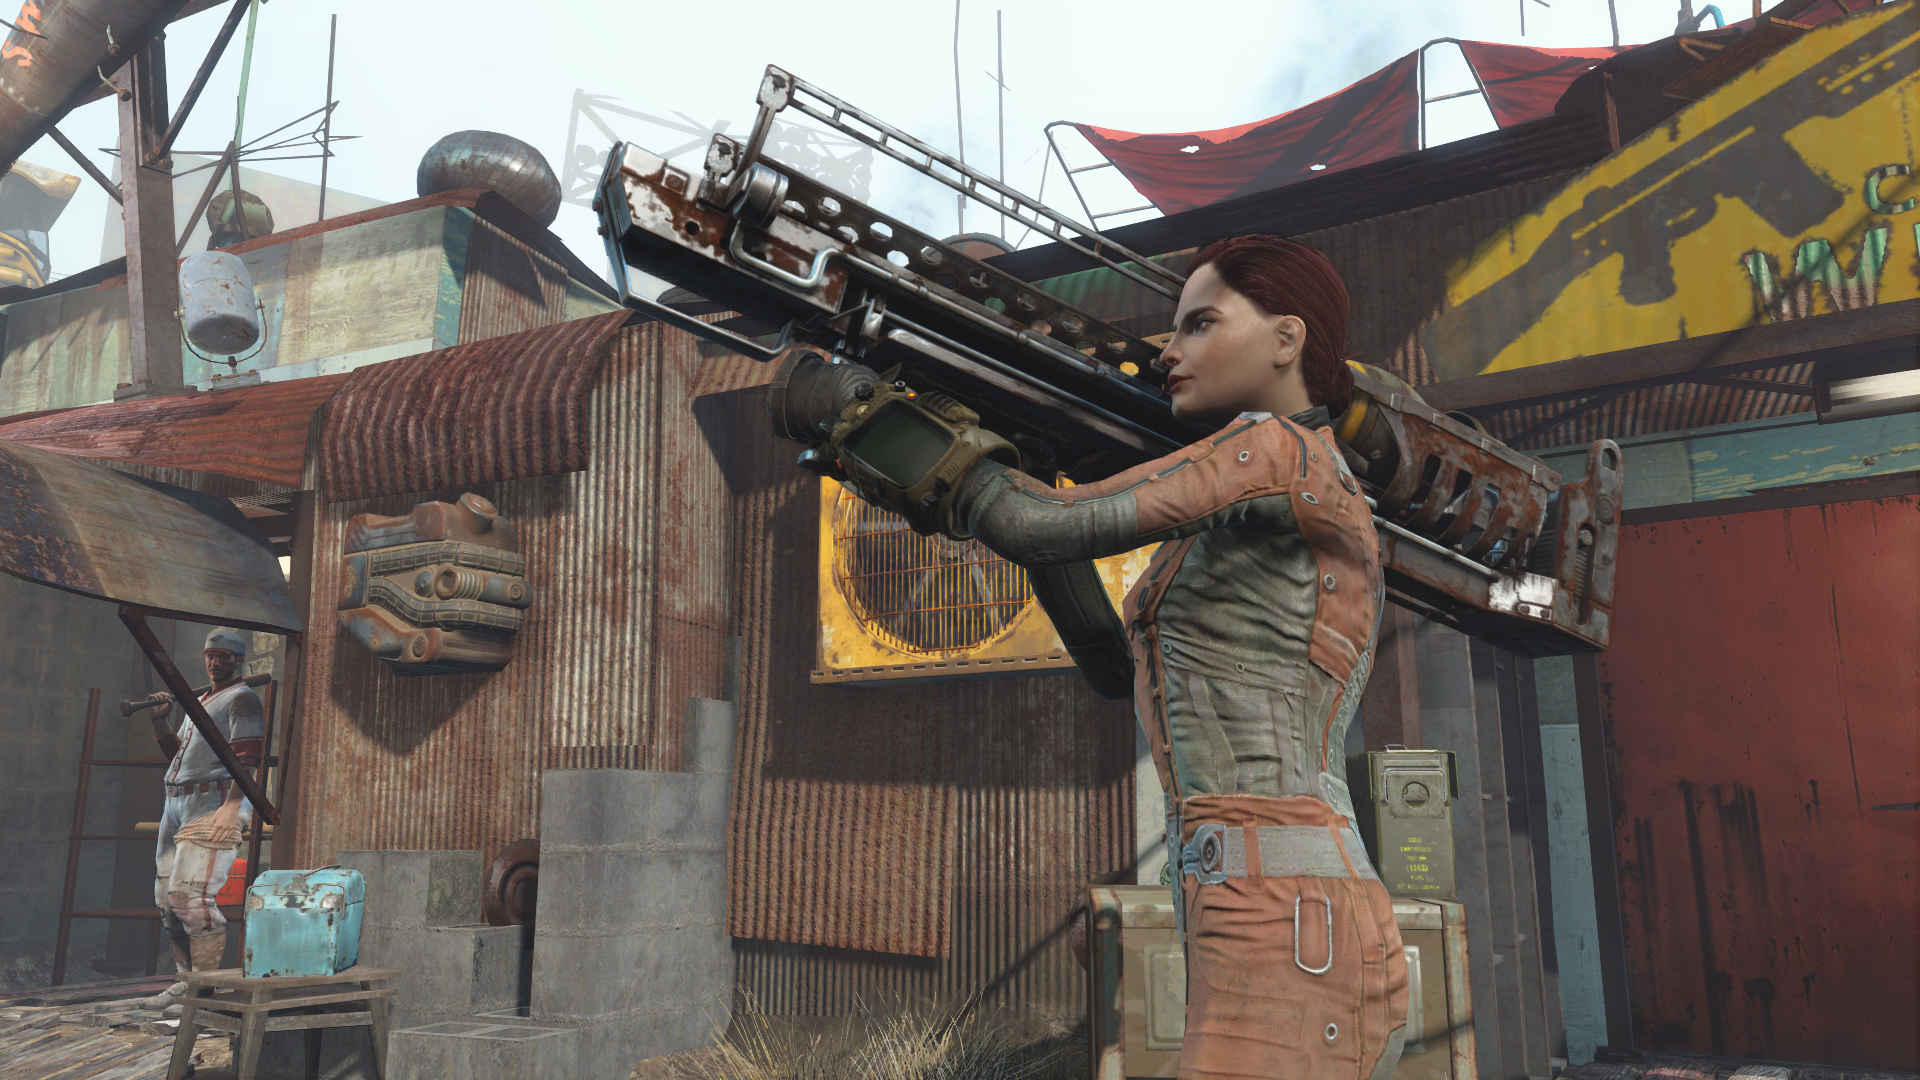 Fallout 4 unique weapons guide - where to find the best guns and